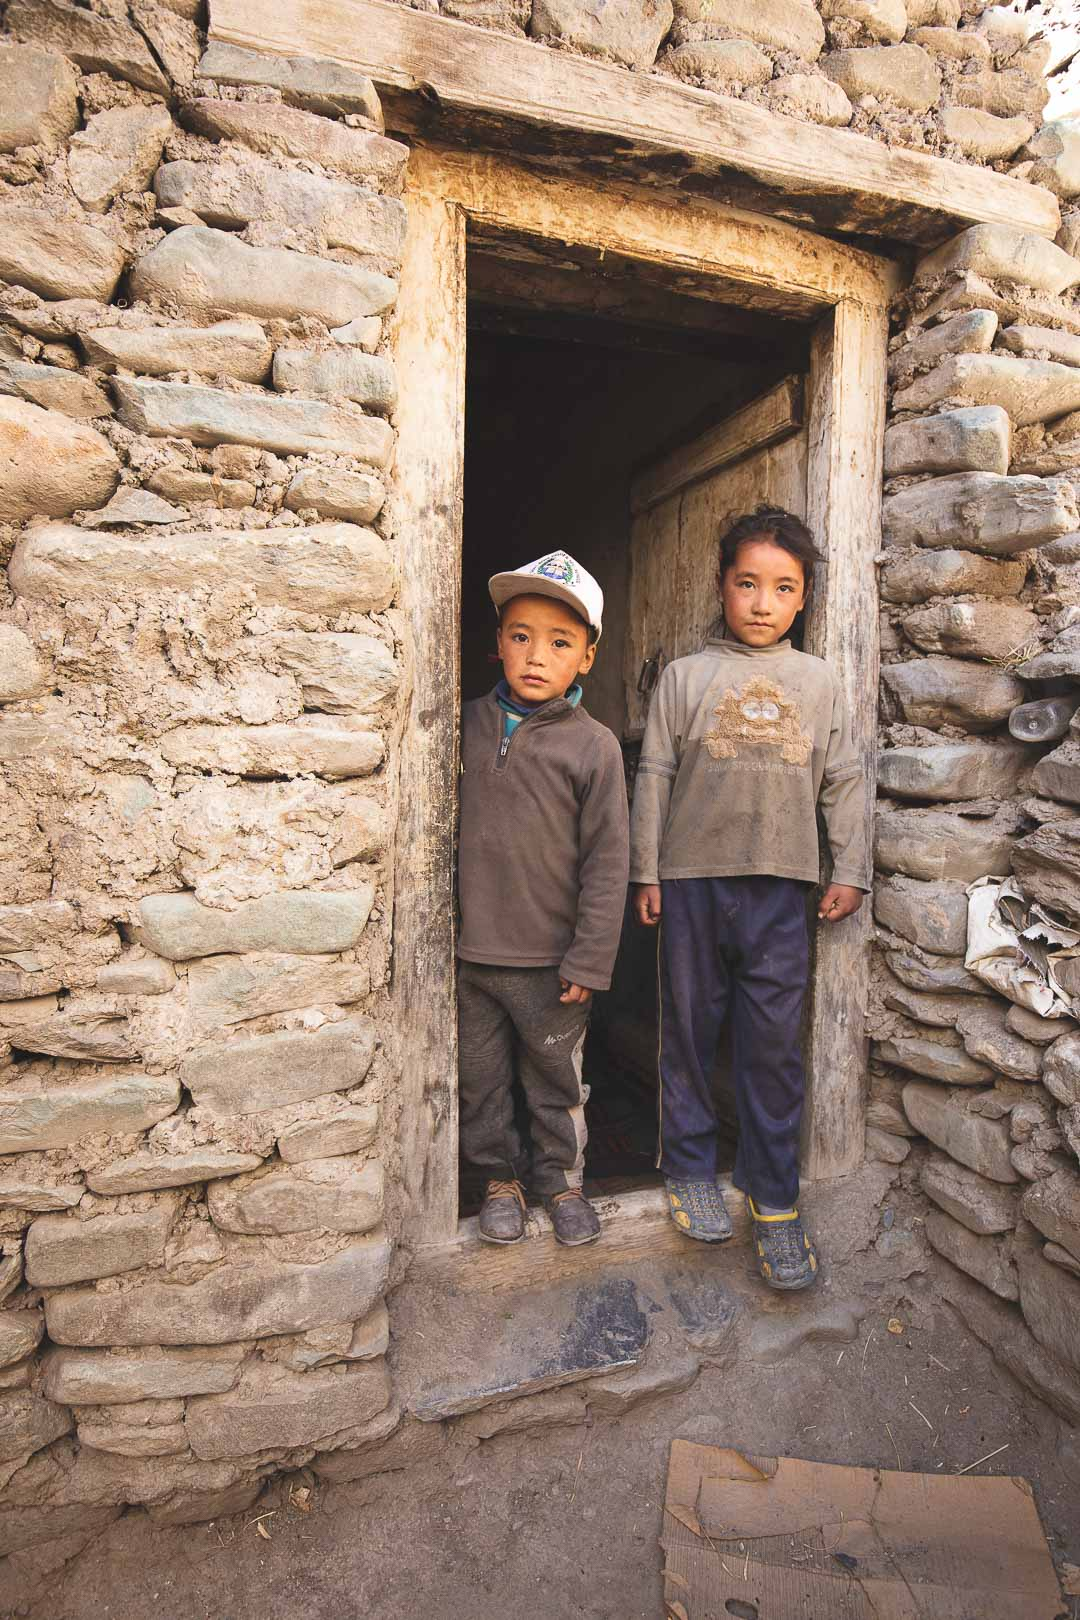 Local Ladakhi children in Markha village in India